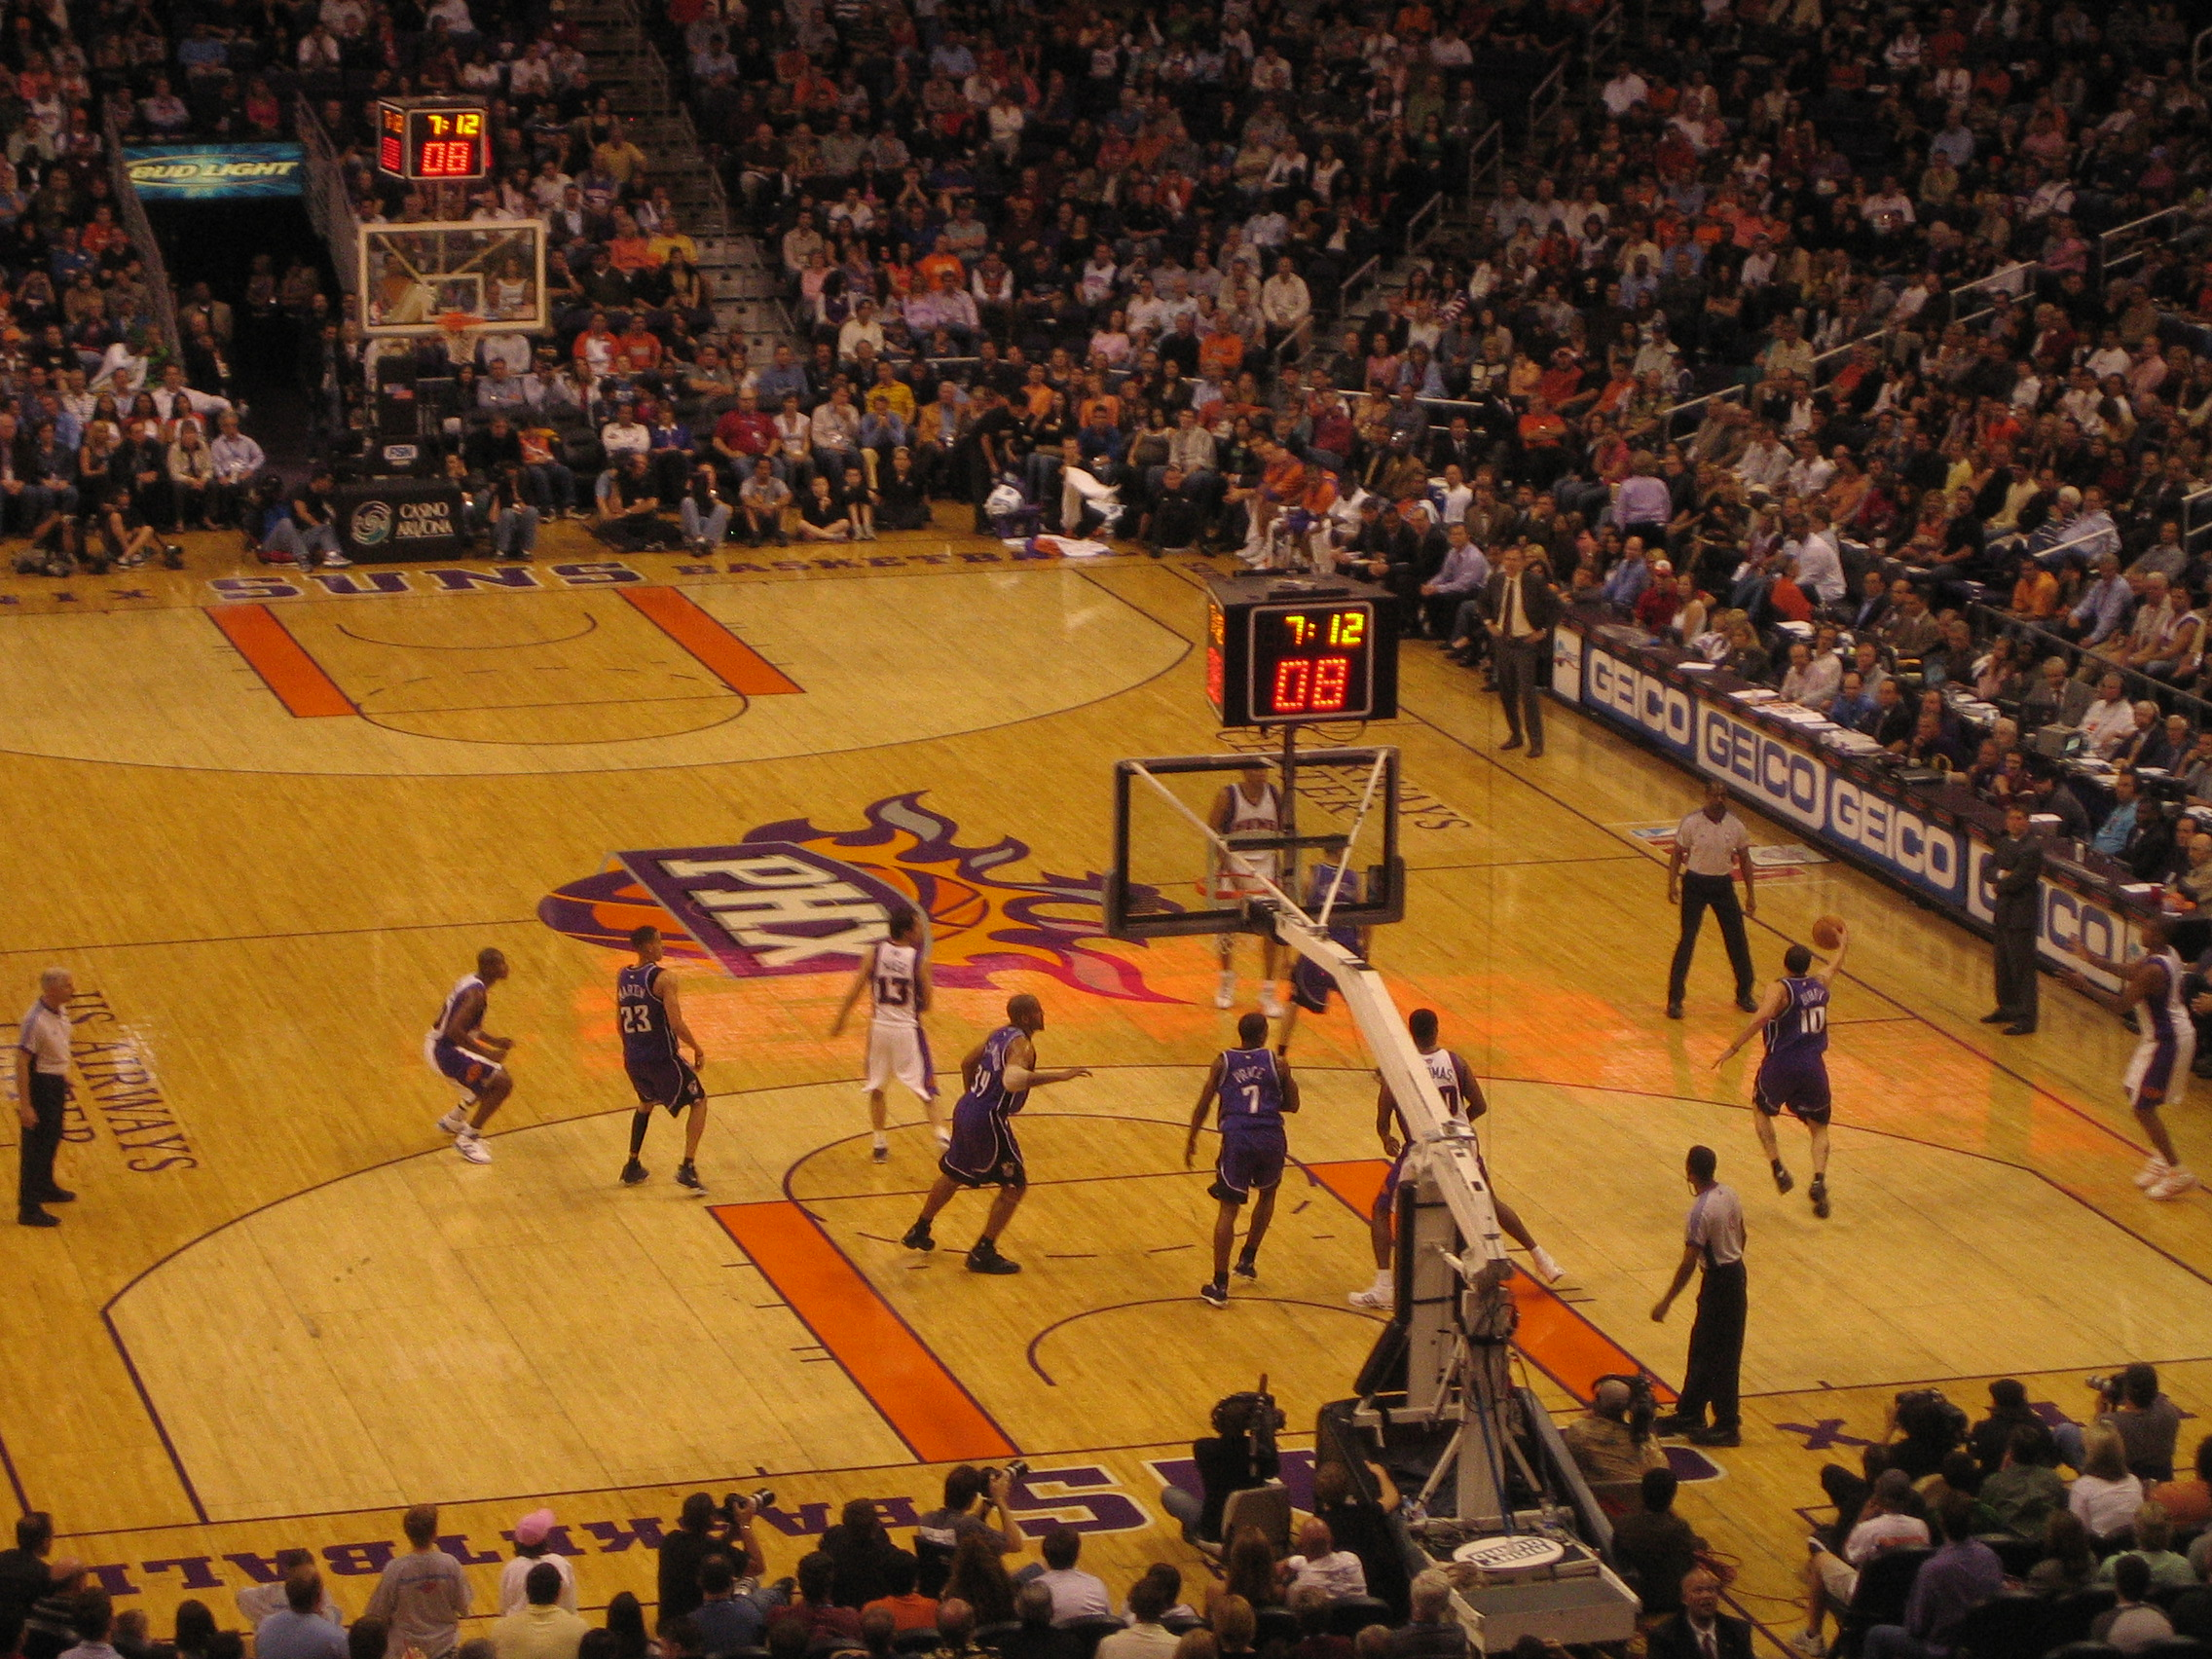 reputable site 1e0da 442e3 List of Phoenix Suns seasons - Wikipedia